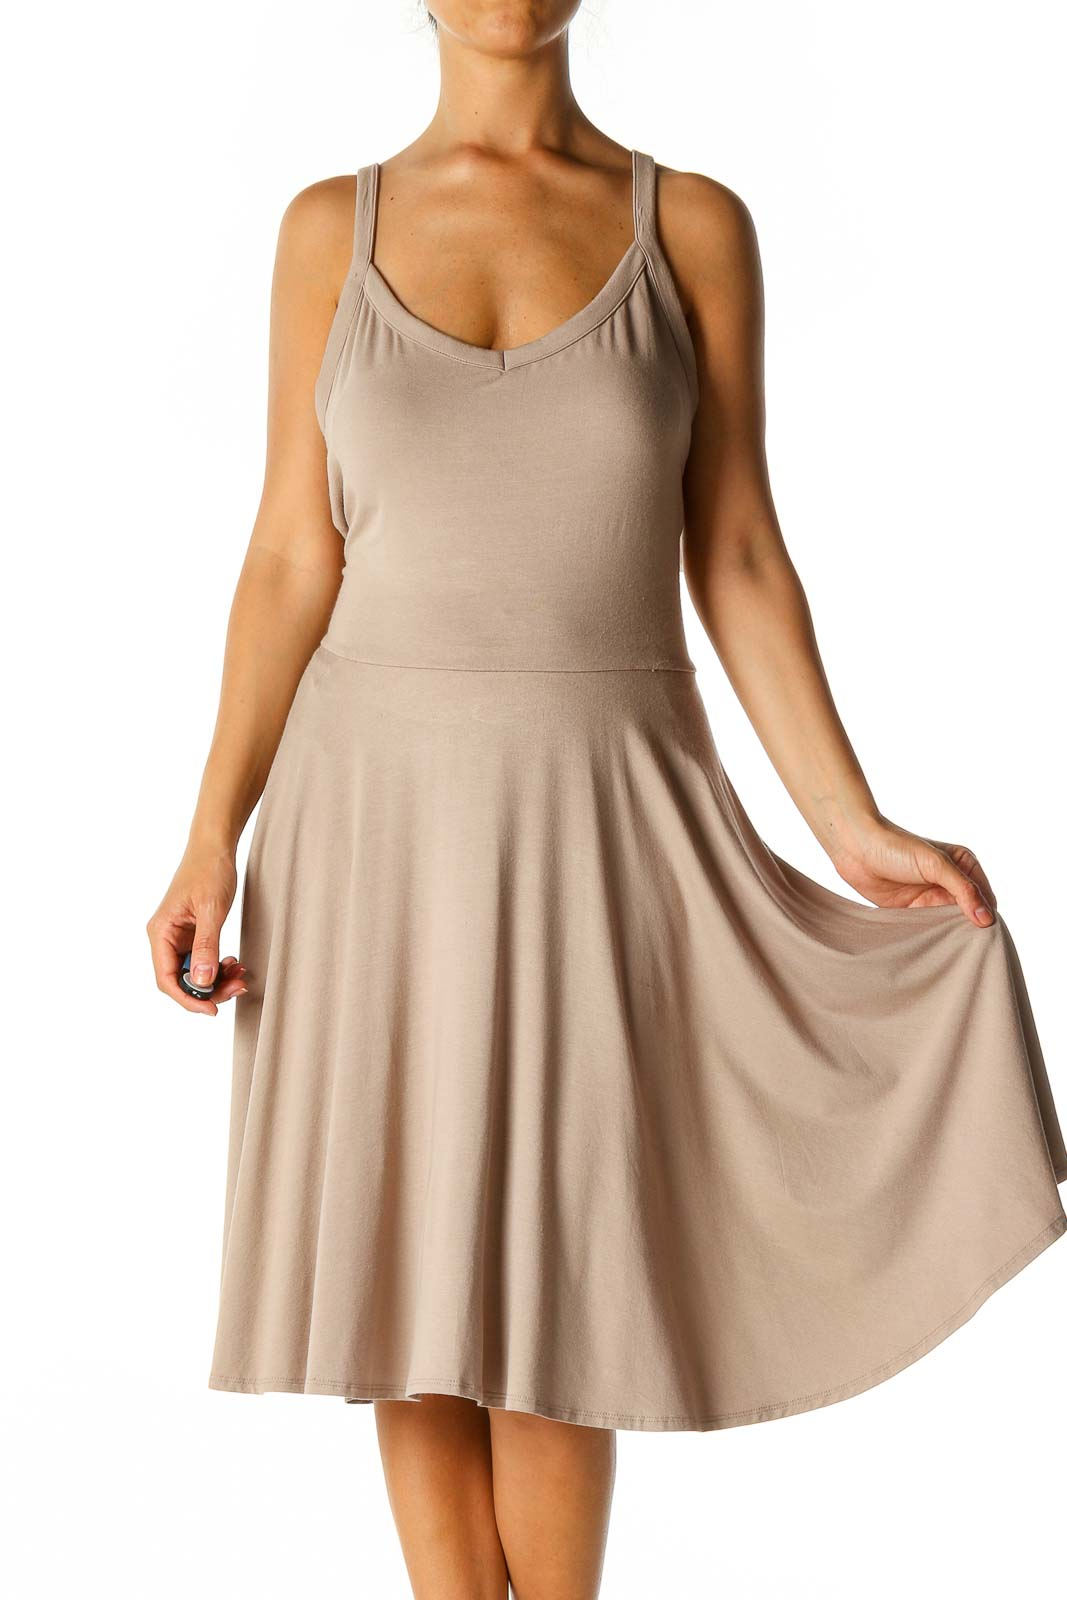 Brown Solid Casual A-Line Dress Front